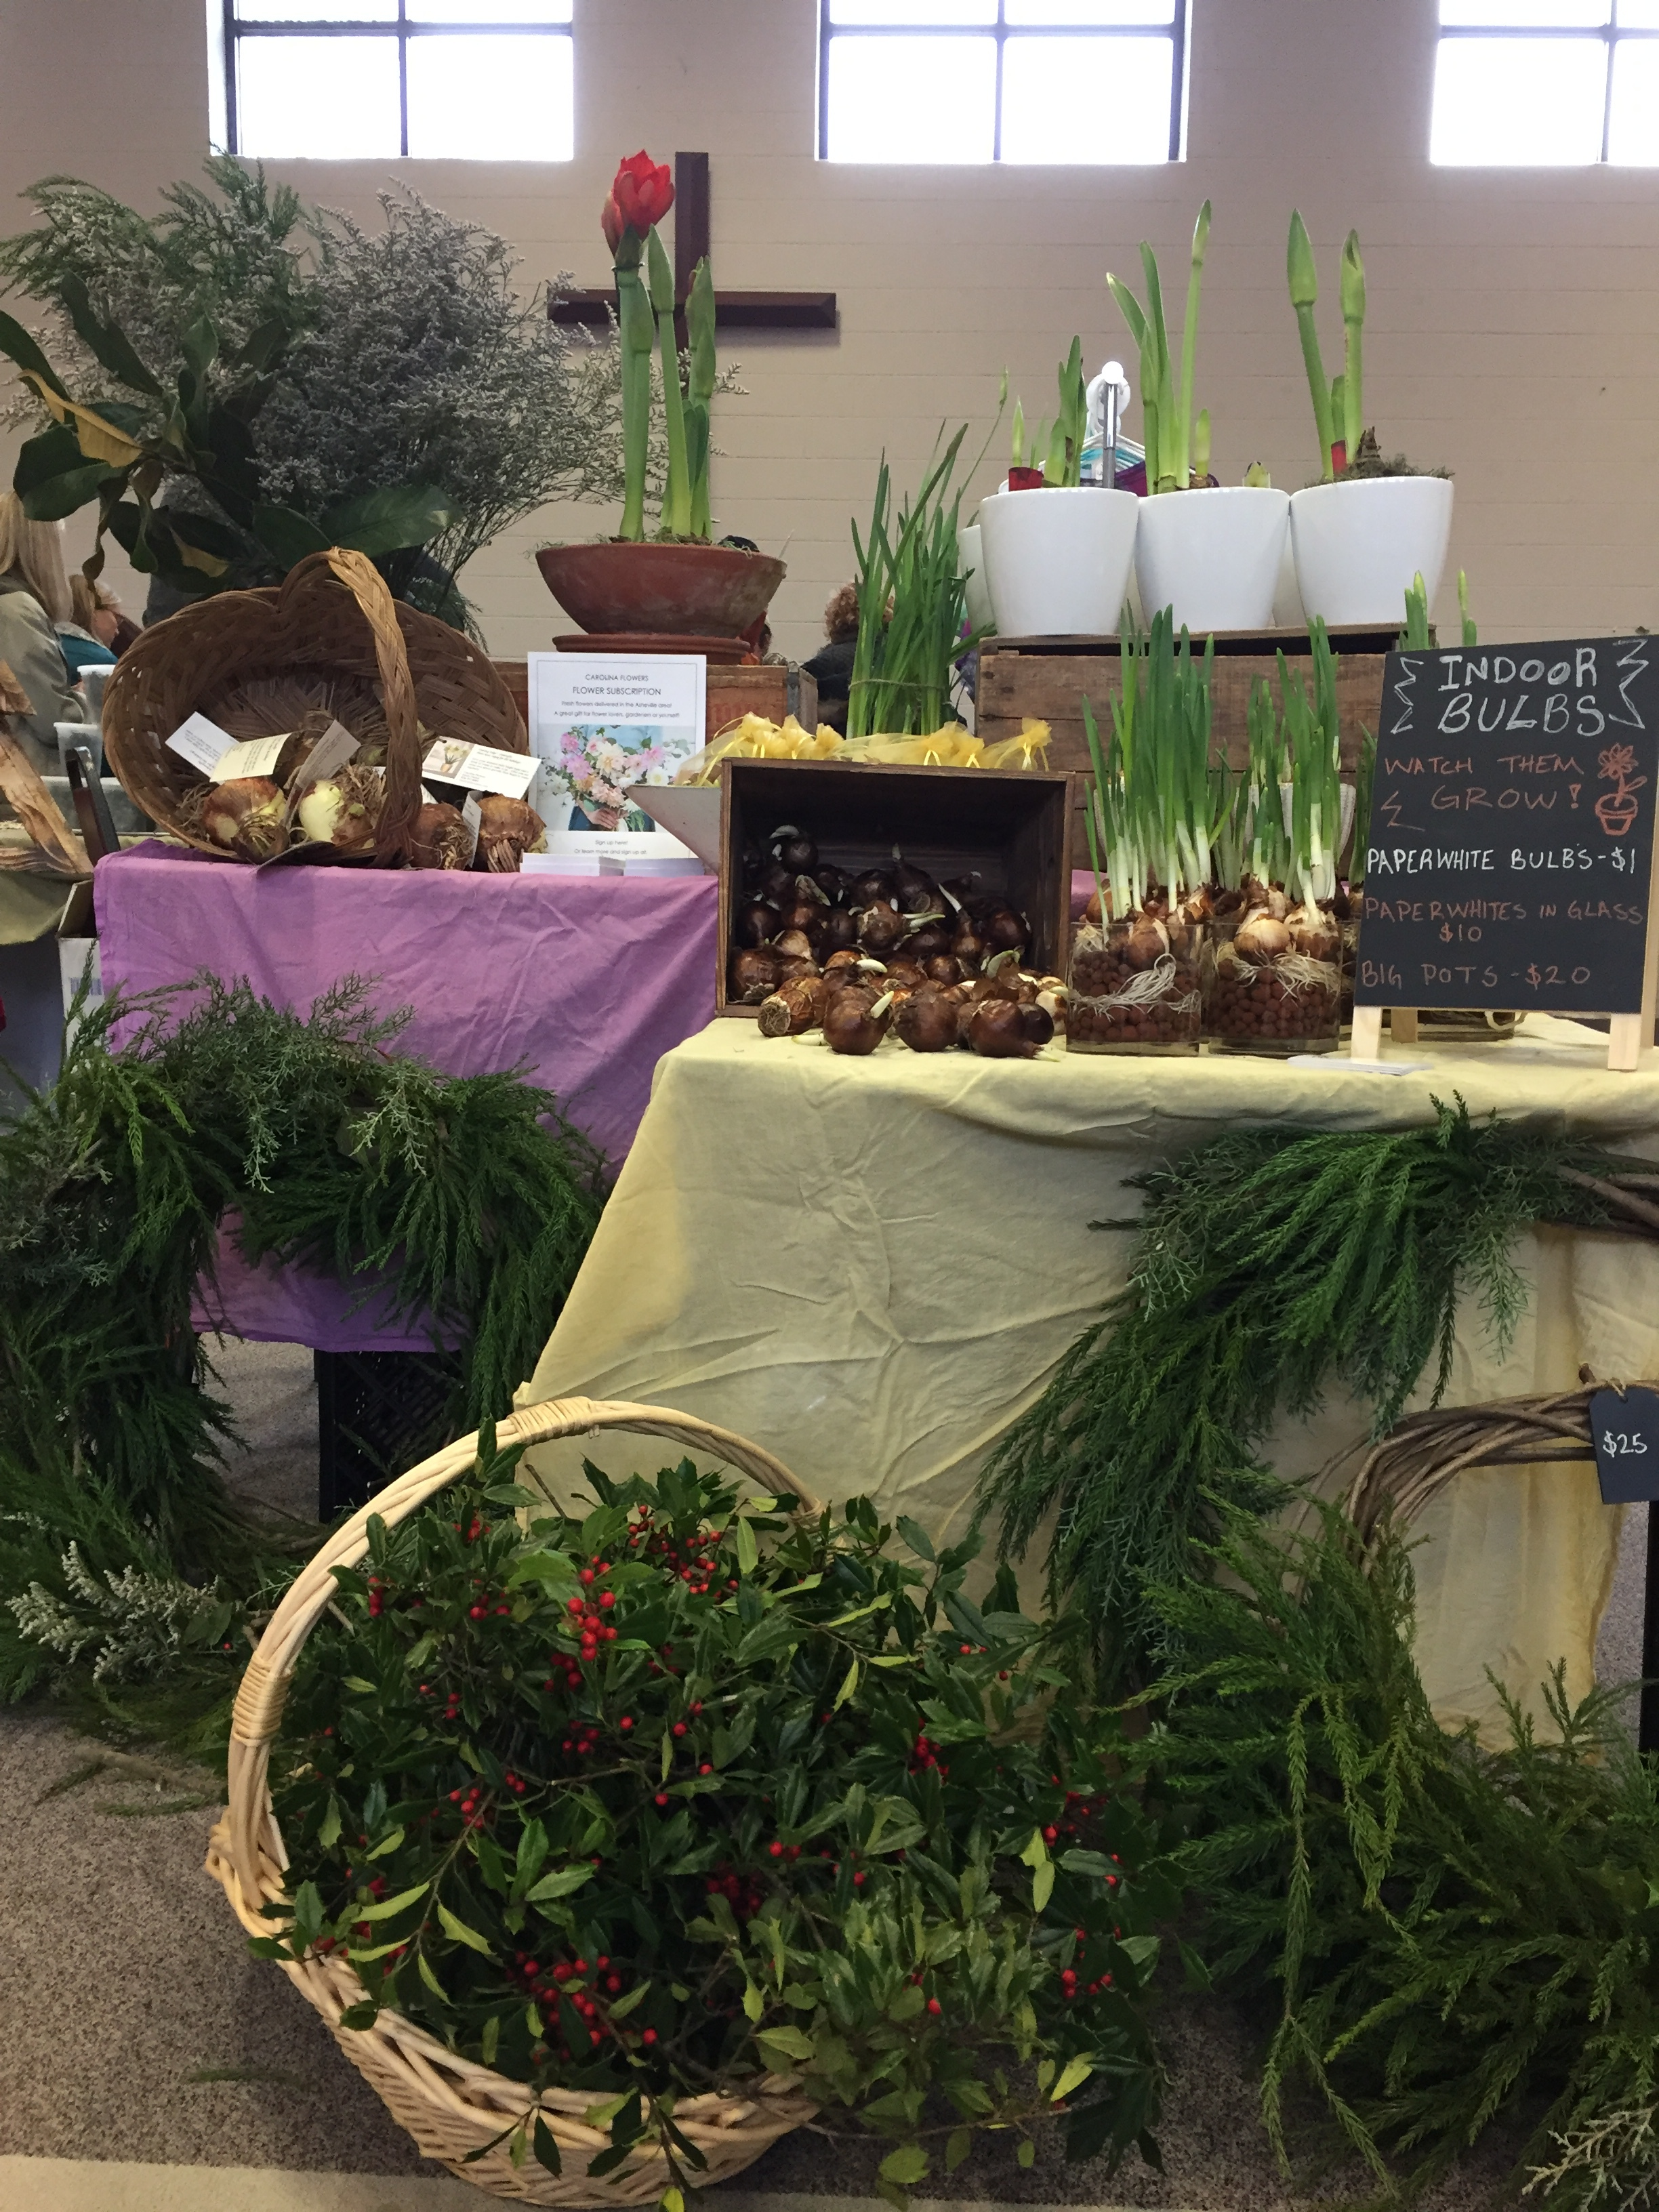 "One of my markets stands from this holiday season. Note my prominent sign: ""Indoor Bulbs! Watch them Grow!"" And my cascading display that makes people want to touch bulbs."